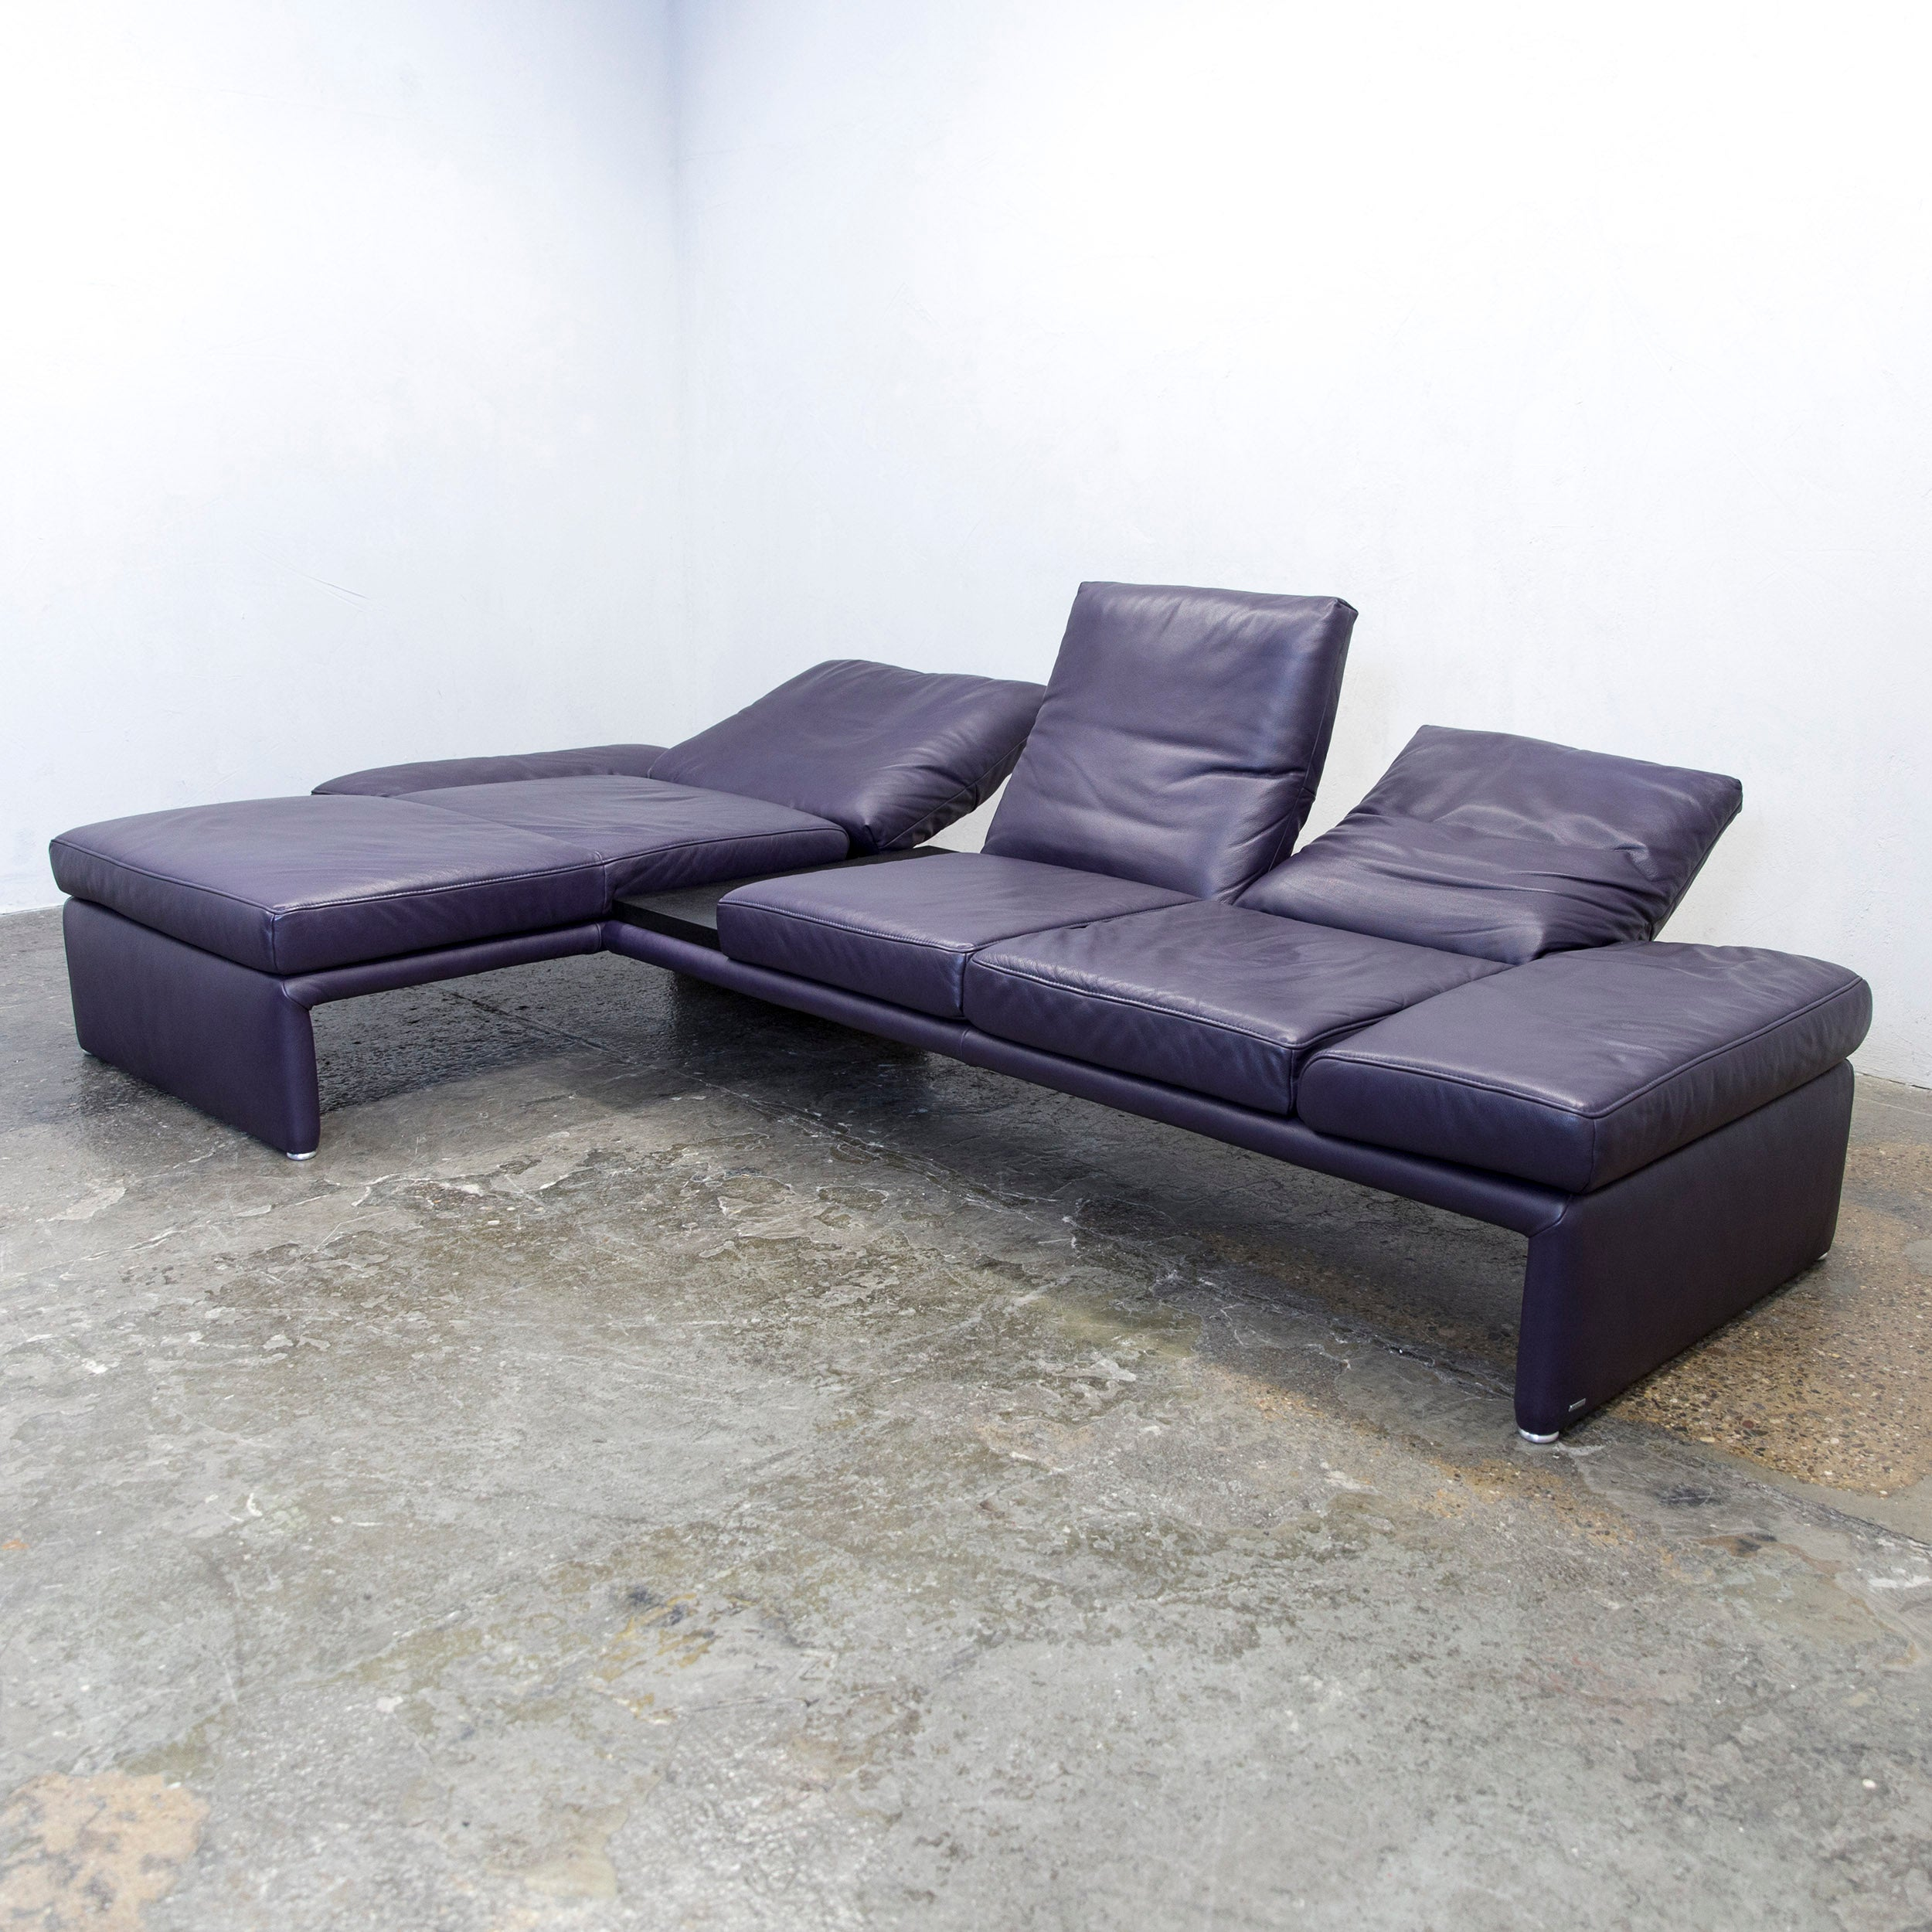 aubergine leather corner sofa. Black Bedroom Furniture Sets. Home Design Ideas